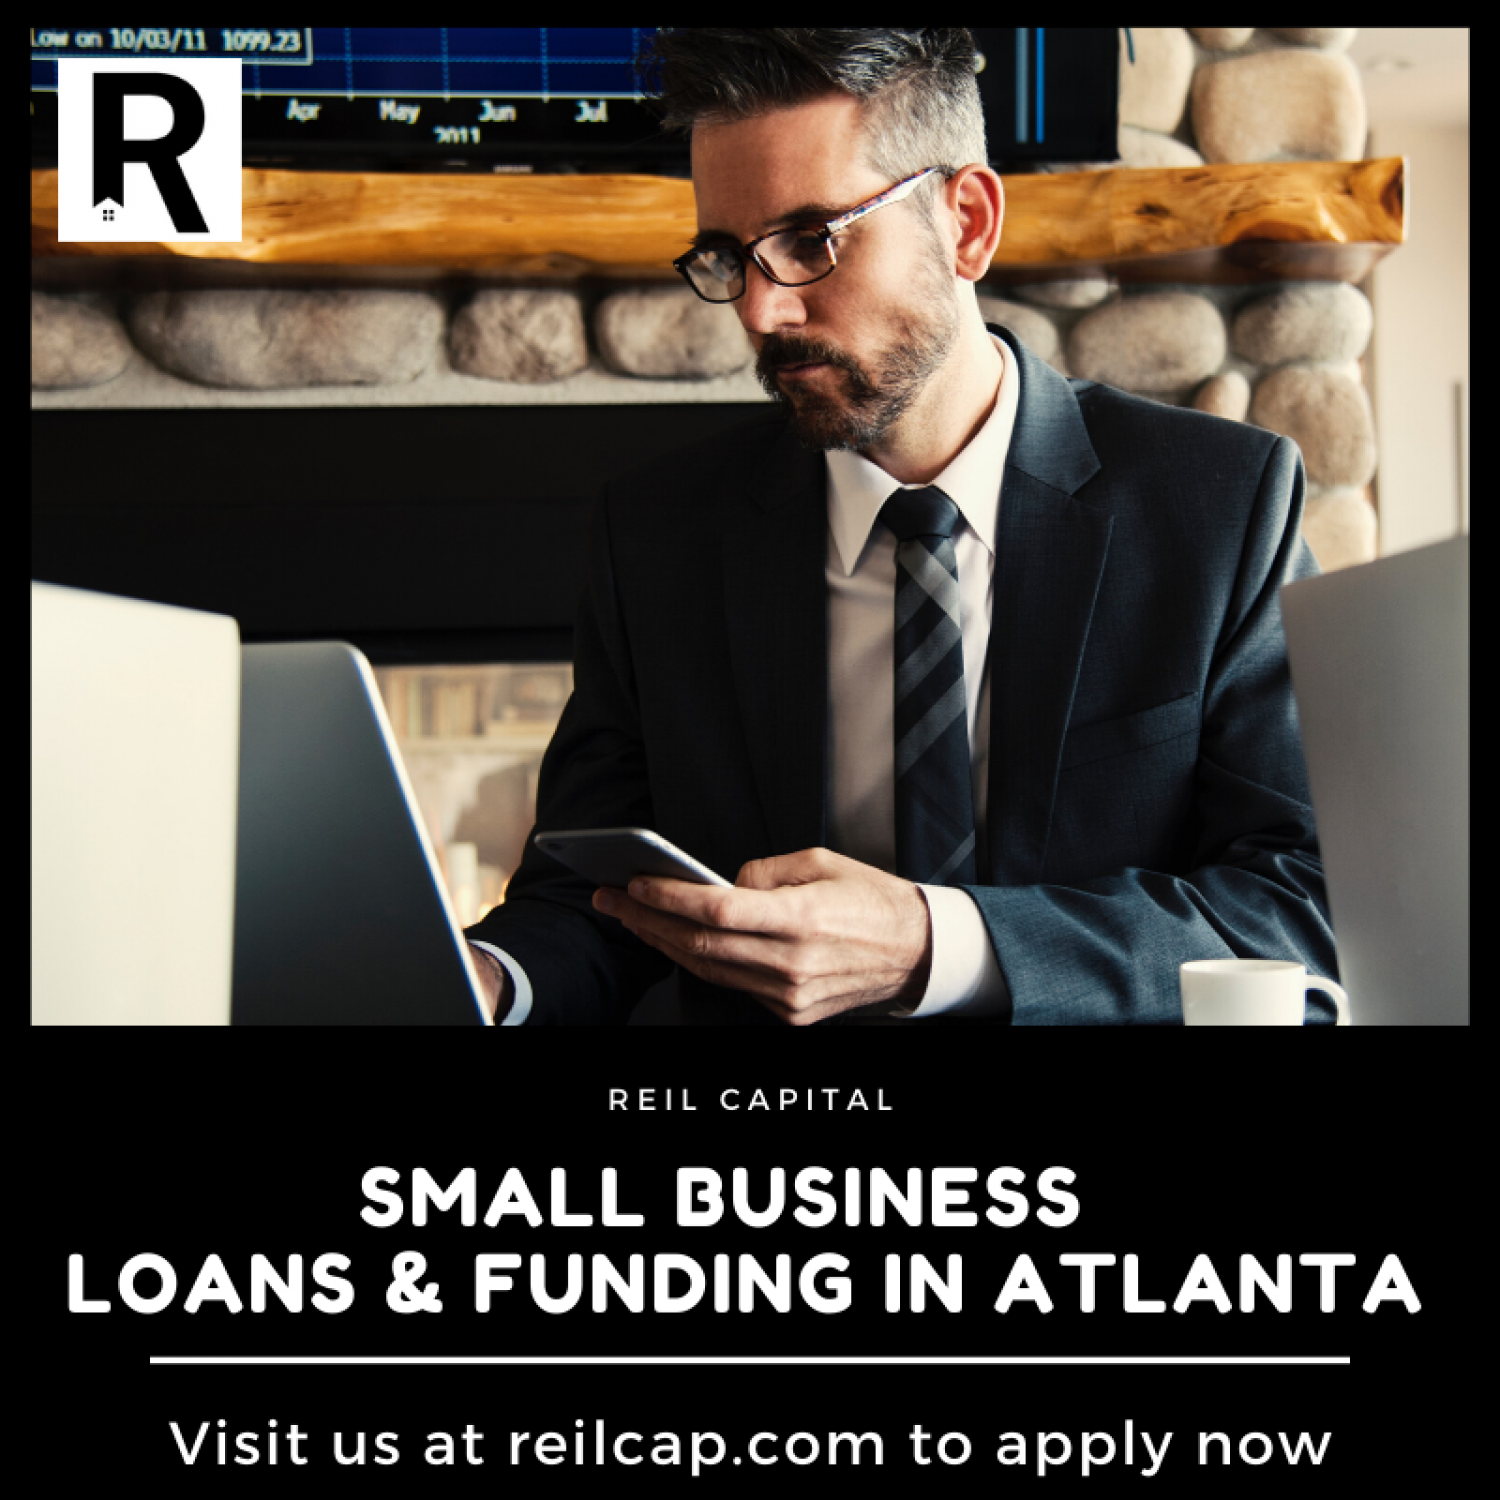 Small Business Loans & Funding in Atlanta Infographic